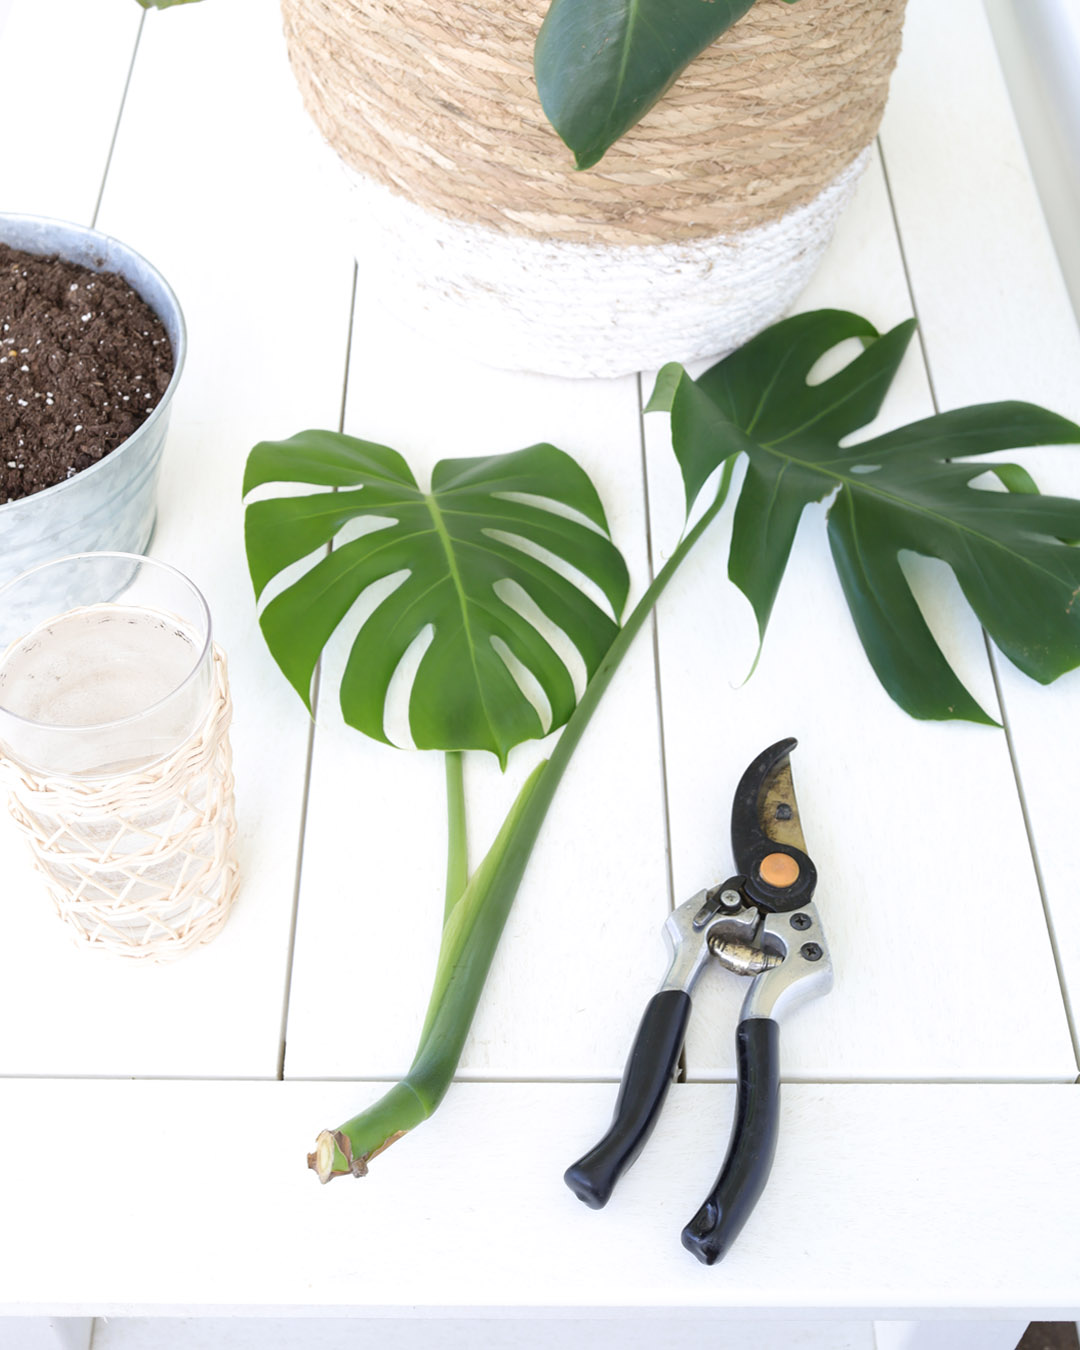 You may have heard that it's really easy to propagate monstera plants, but there's a little trick to it that will make all the difference in how successful you are!